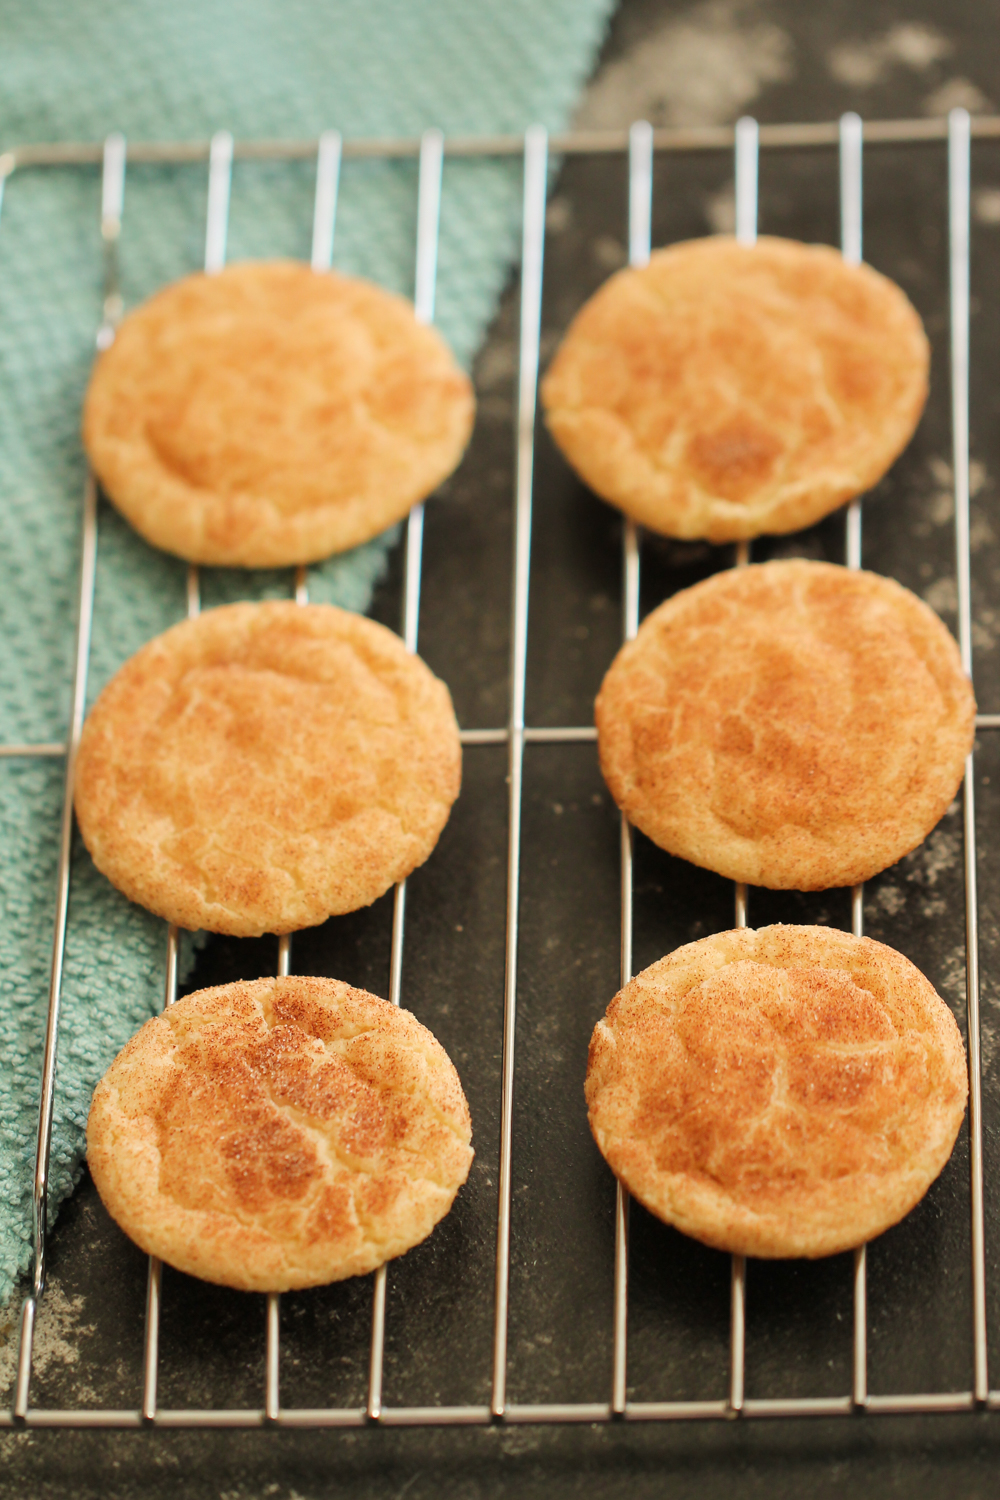 Baked Snickerdoodle cookies on cooling rack